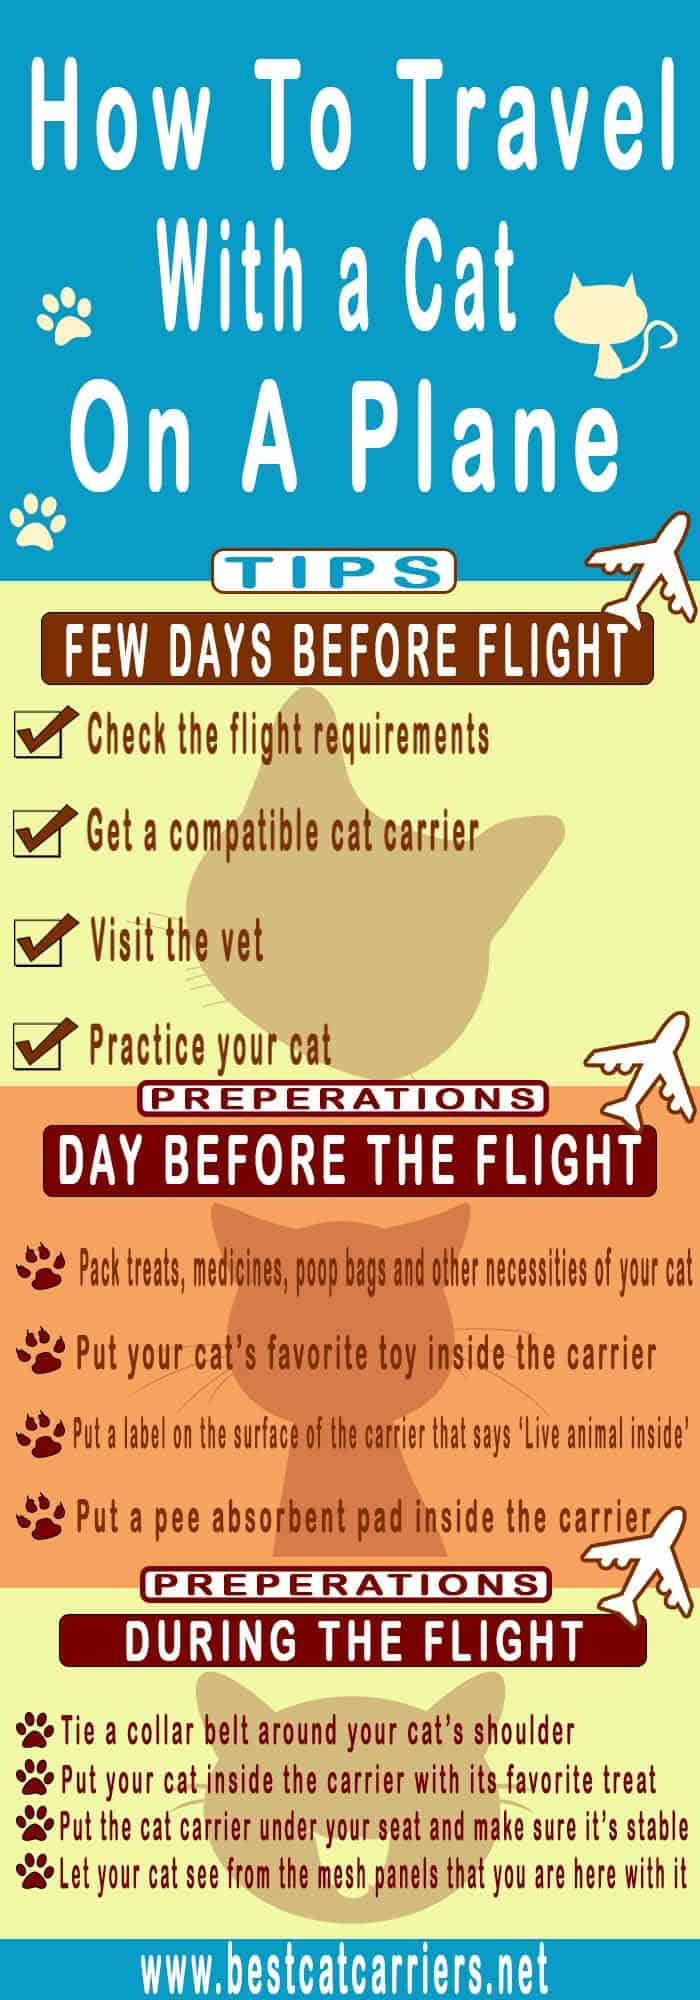 how to travel with a cat on a plane infograph